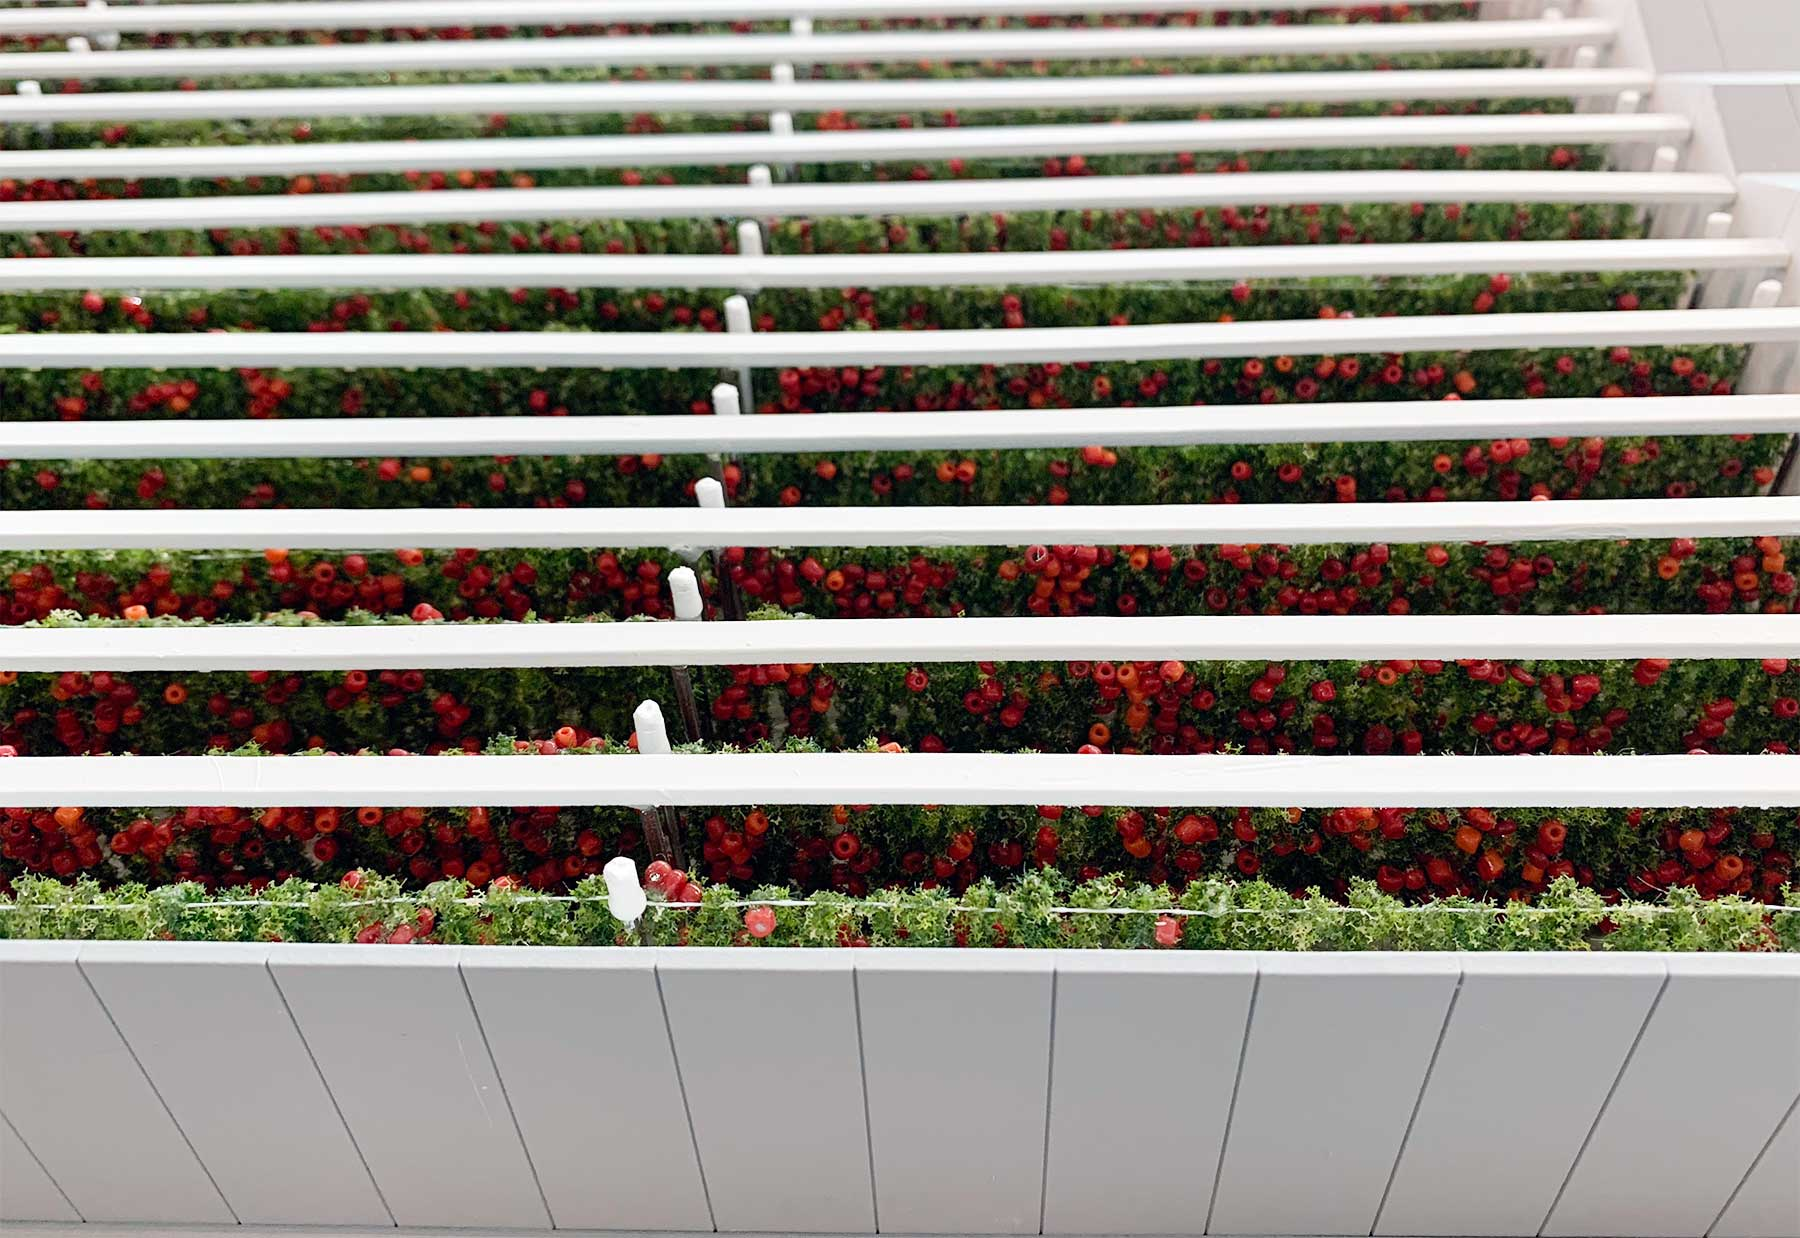 First of its kind, tomato farm in UAE. Half open model to showcase the tomato farm grown indoors.